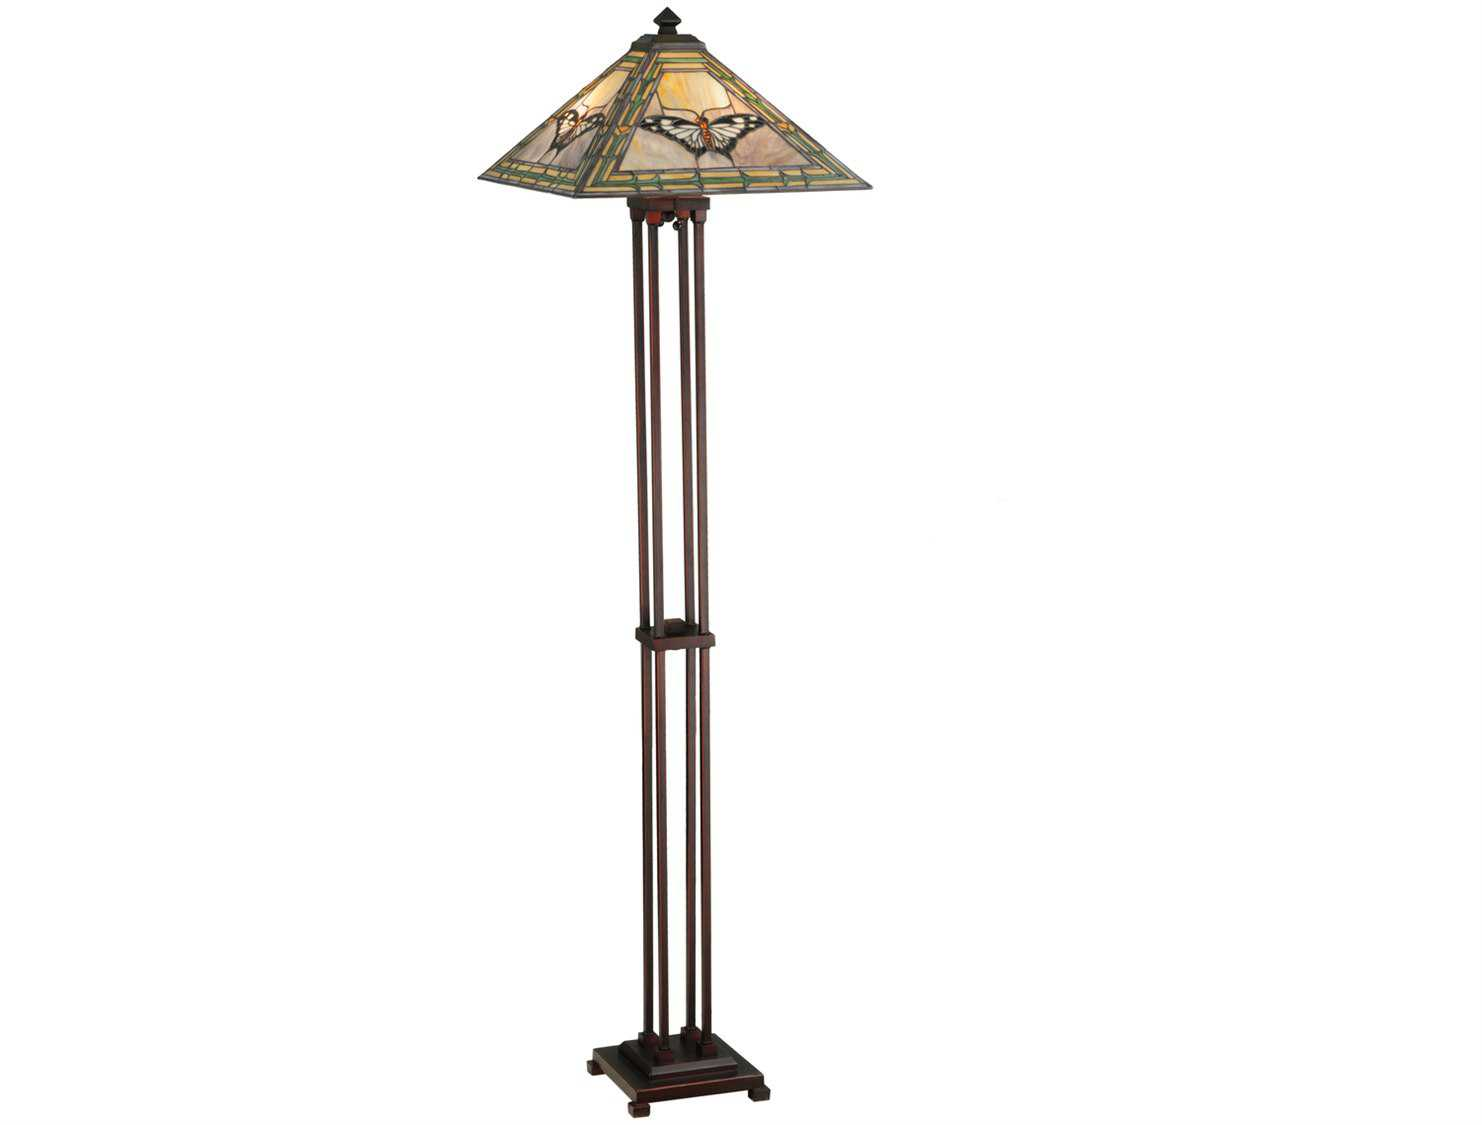 Meyda Tiffany Butterfly Multi Color Floor Lamp 140025